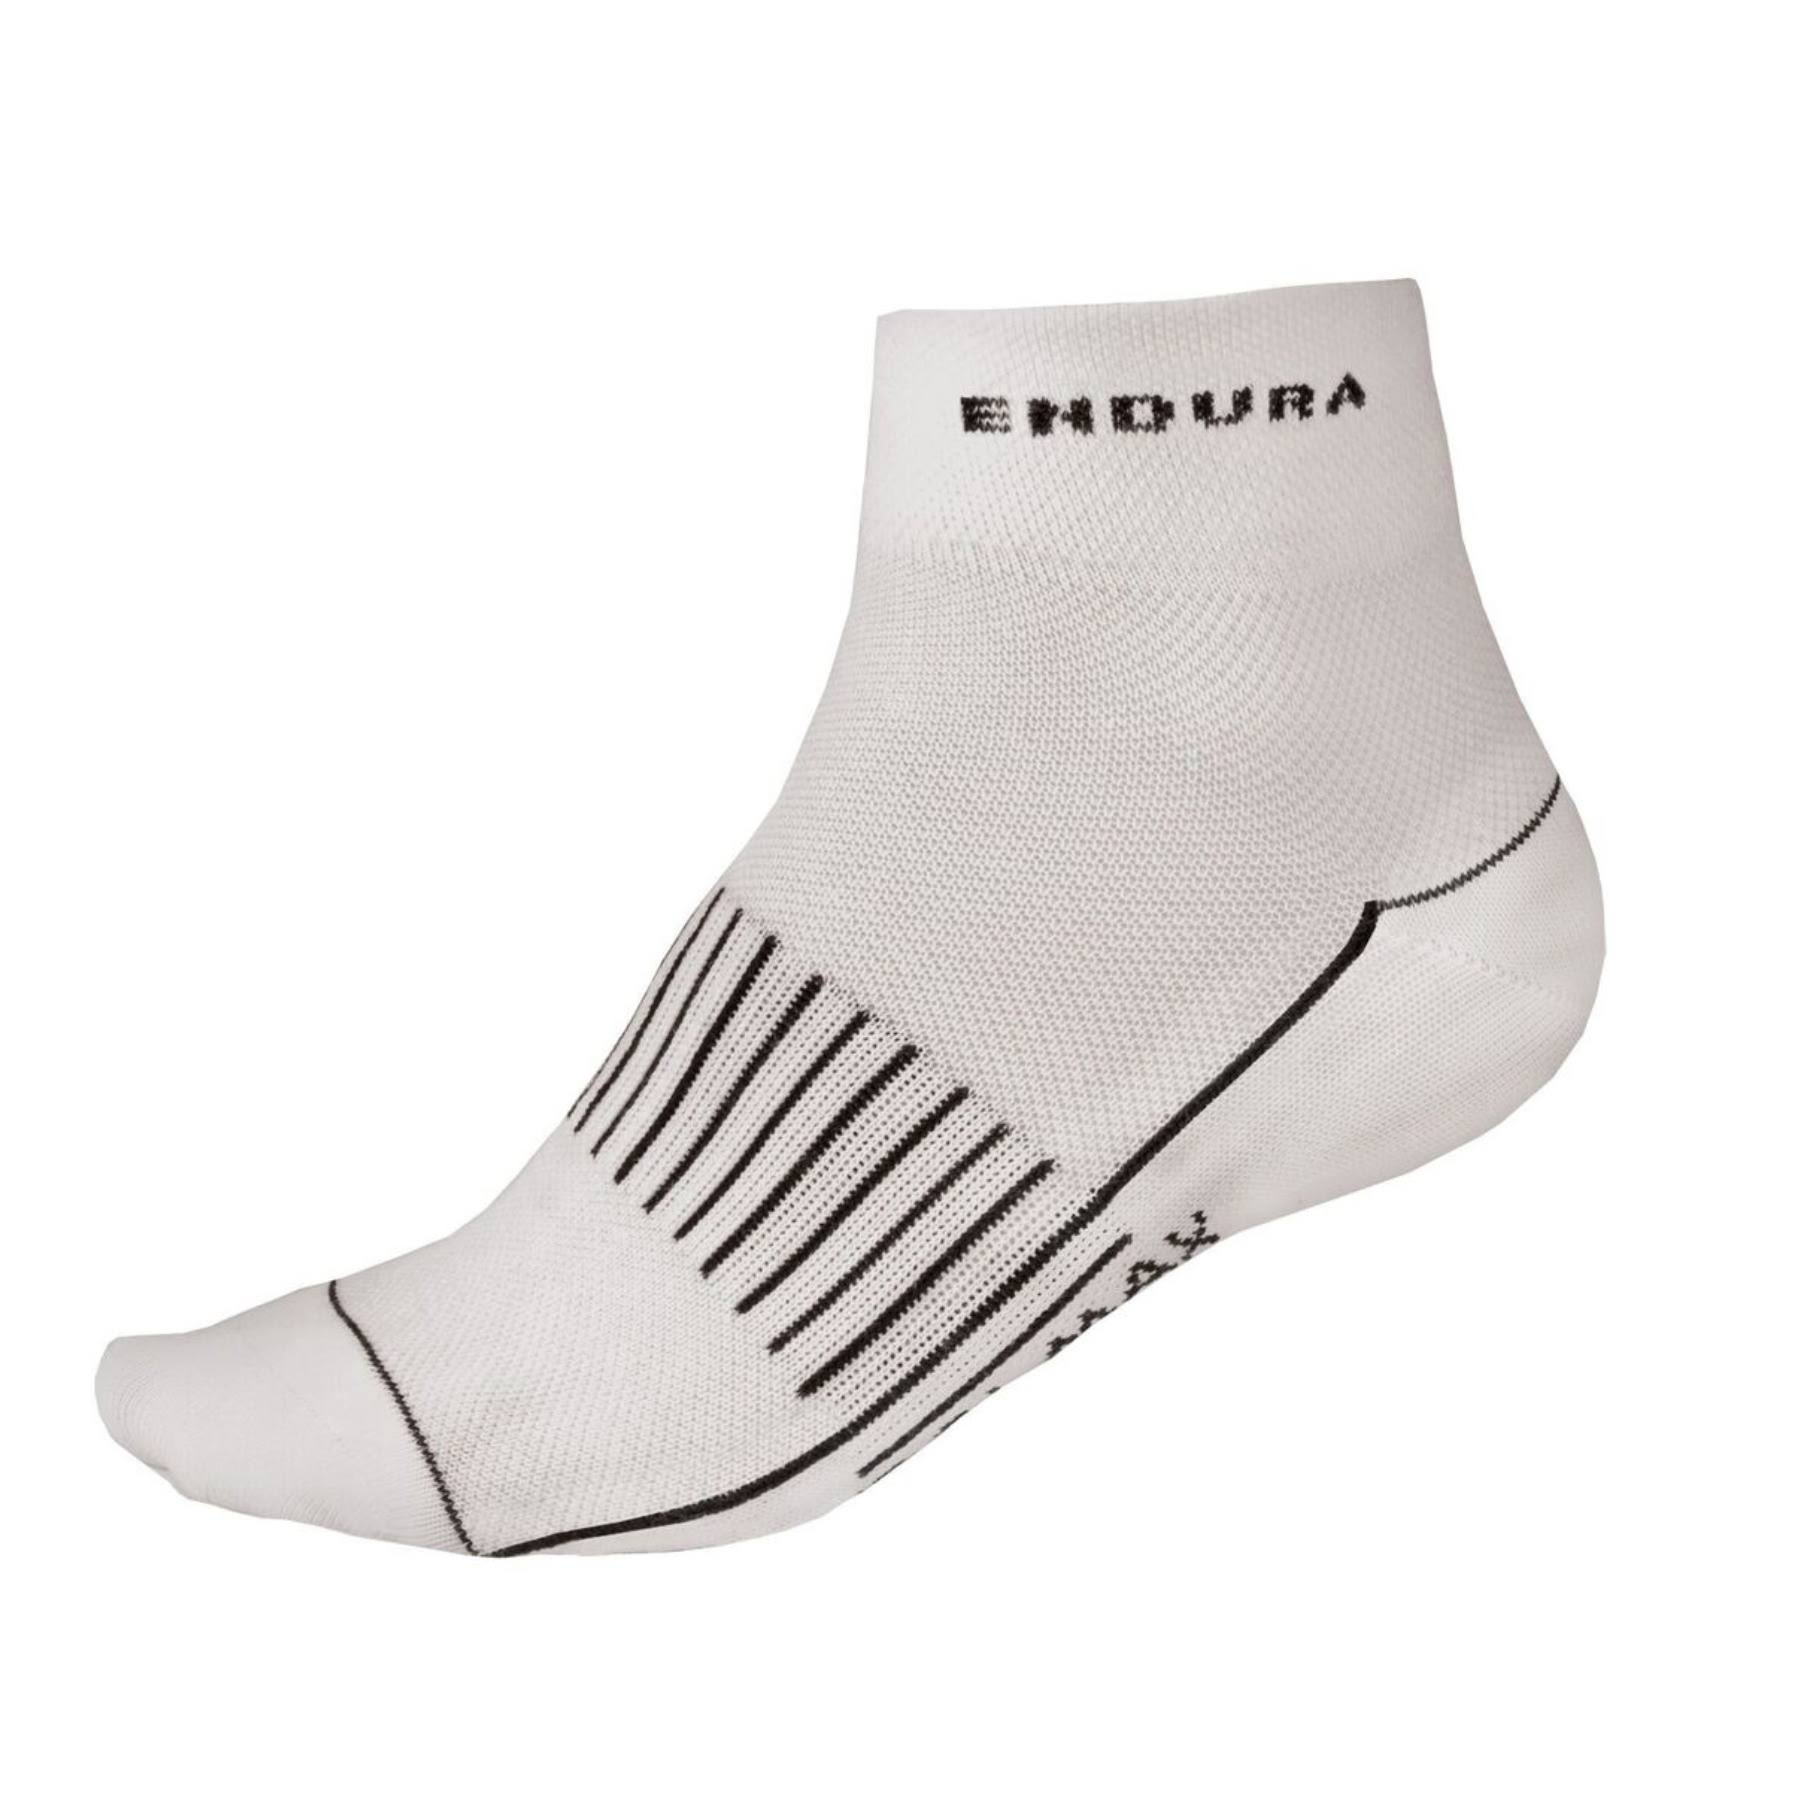 ENDURA COOLMAX® Race II Sock - White, Small to Medium, Pack of 3